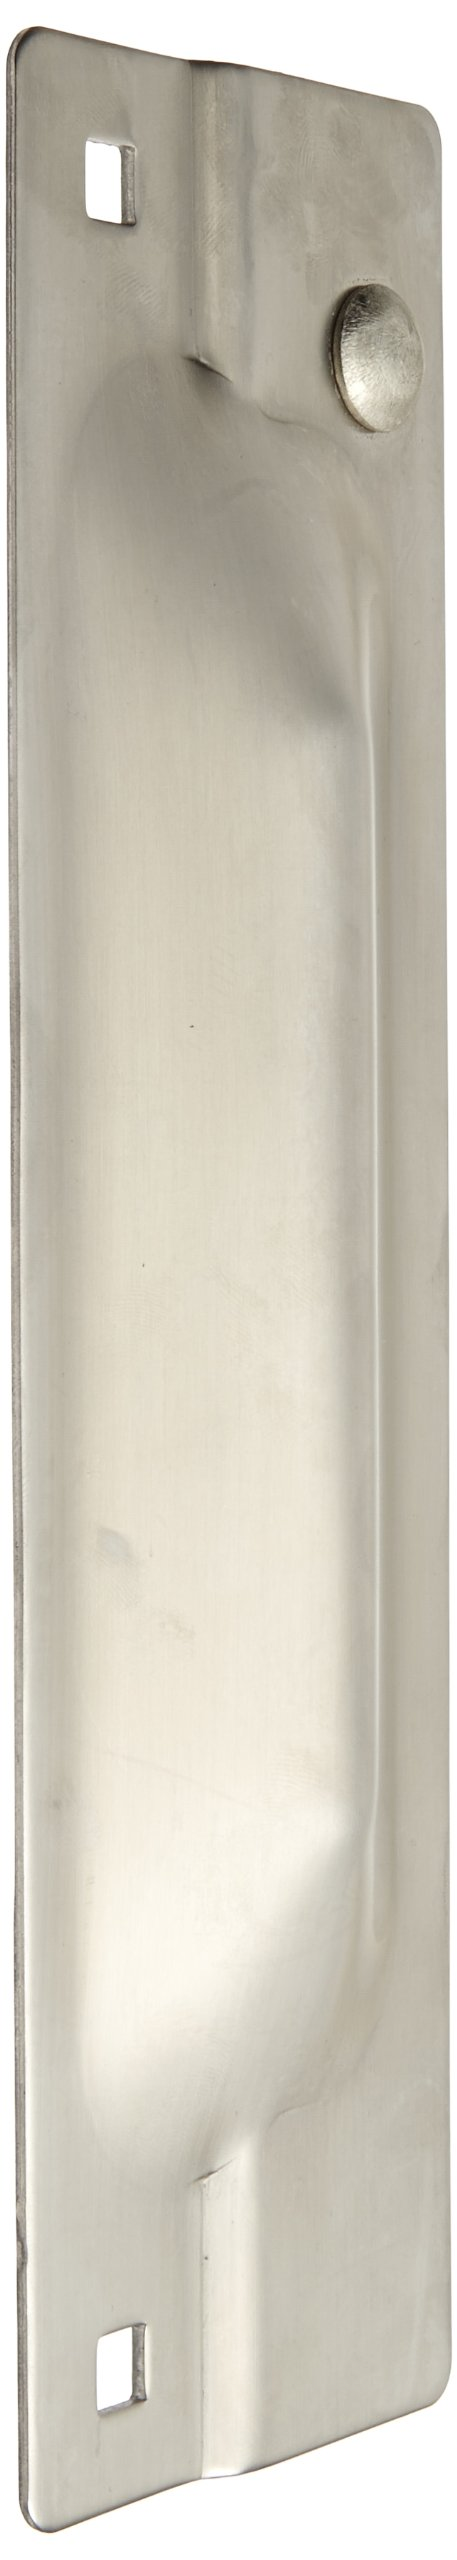 Rockwood 320.32D Stainless Steel Latch Protector, 3'' Width x 11'' Height x .105'' Thickness, Satin Finish